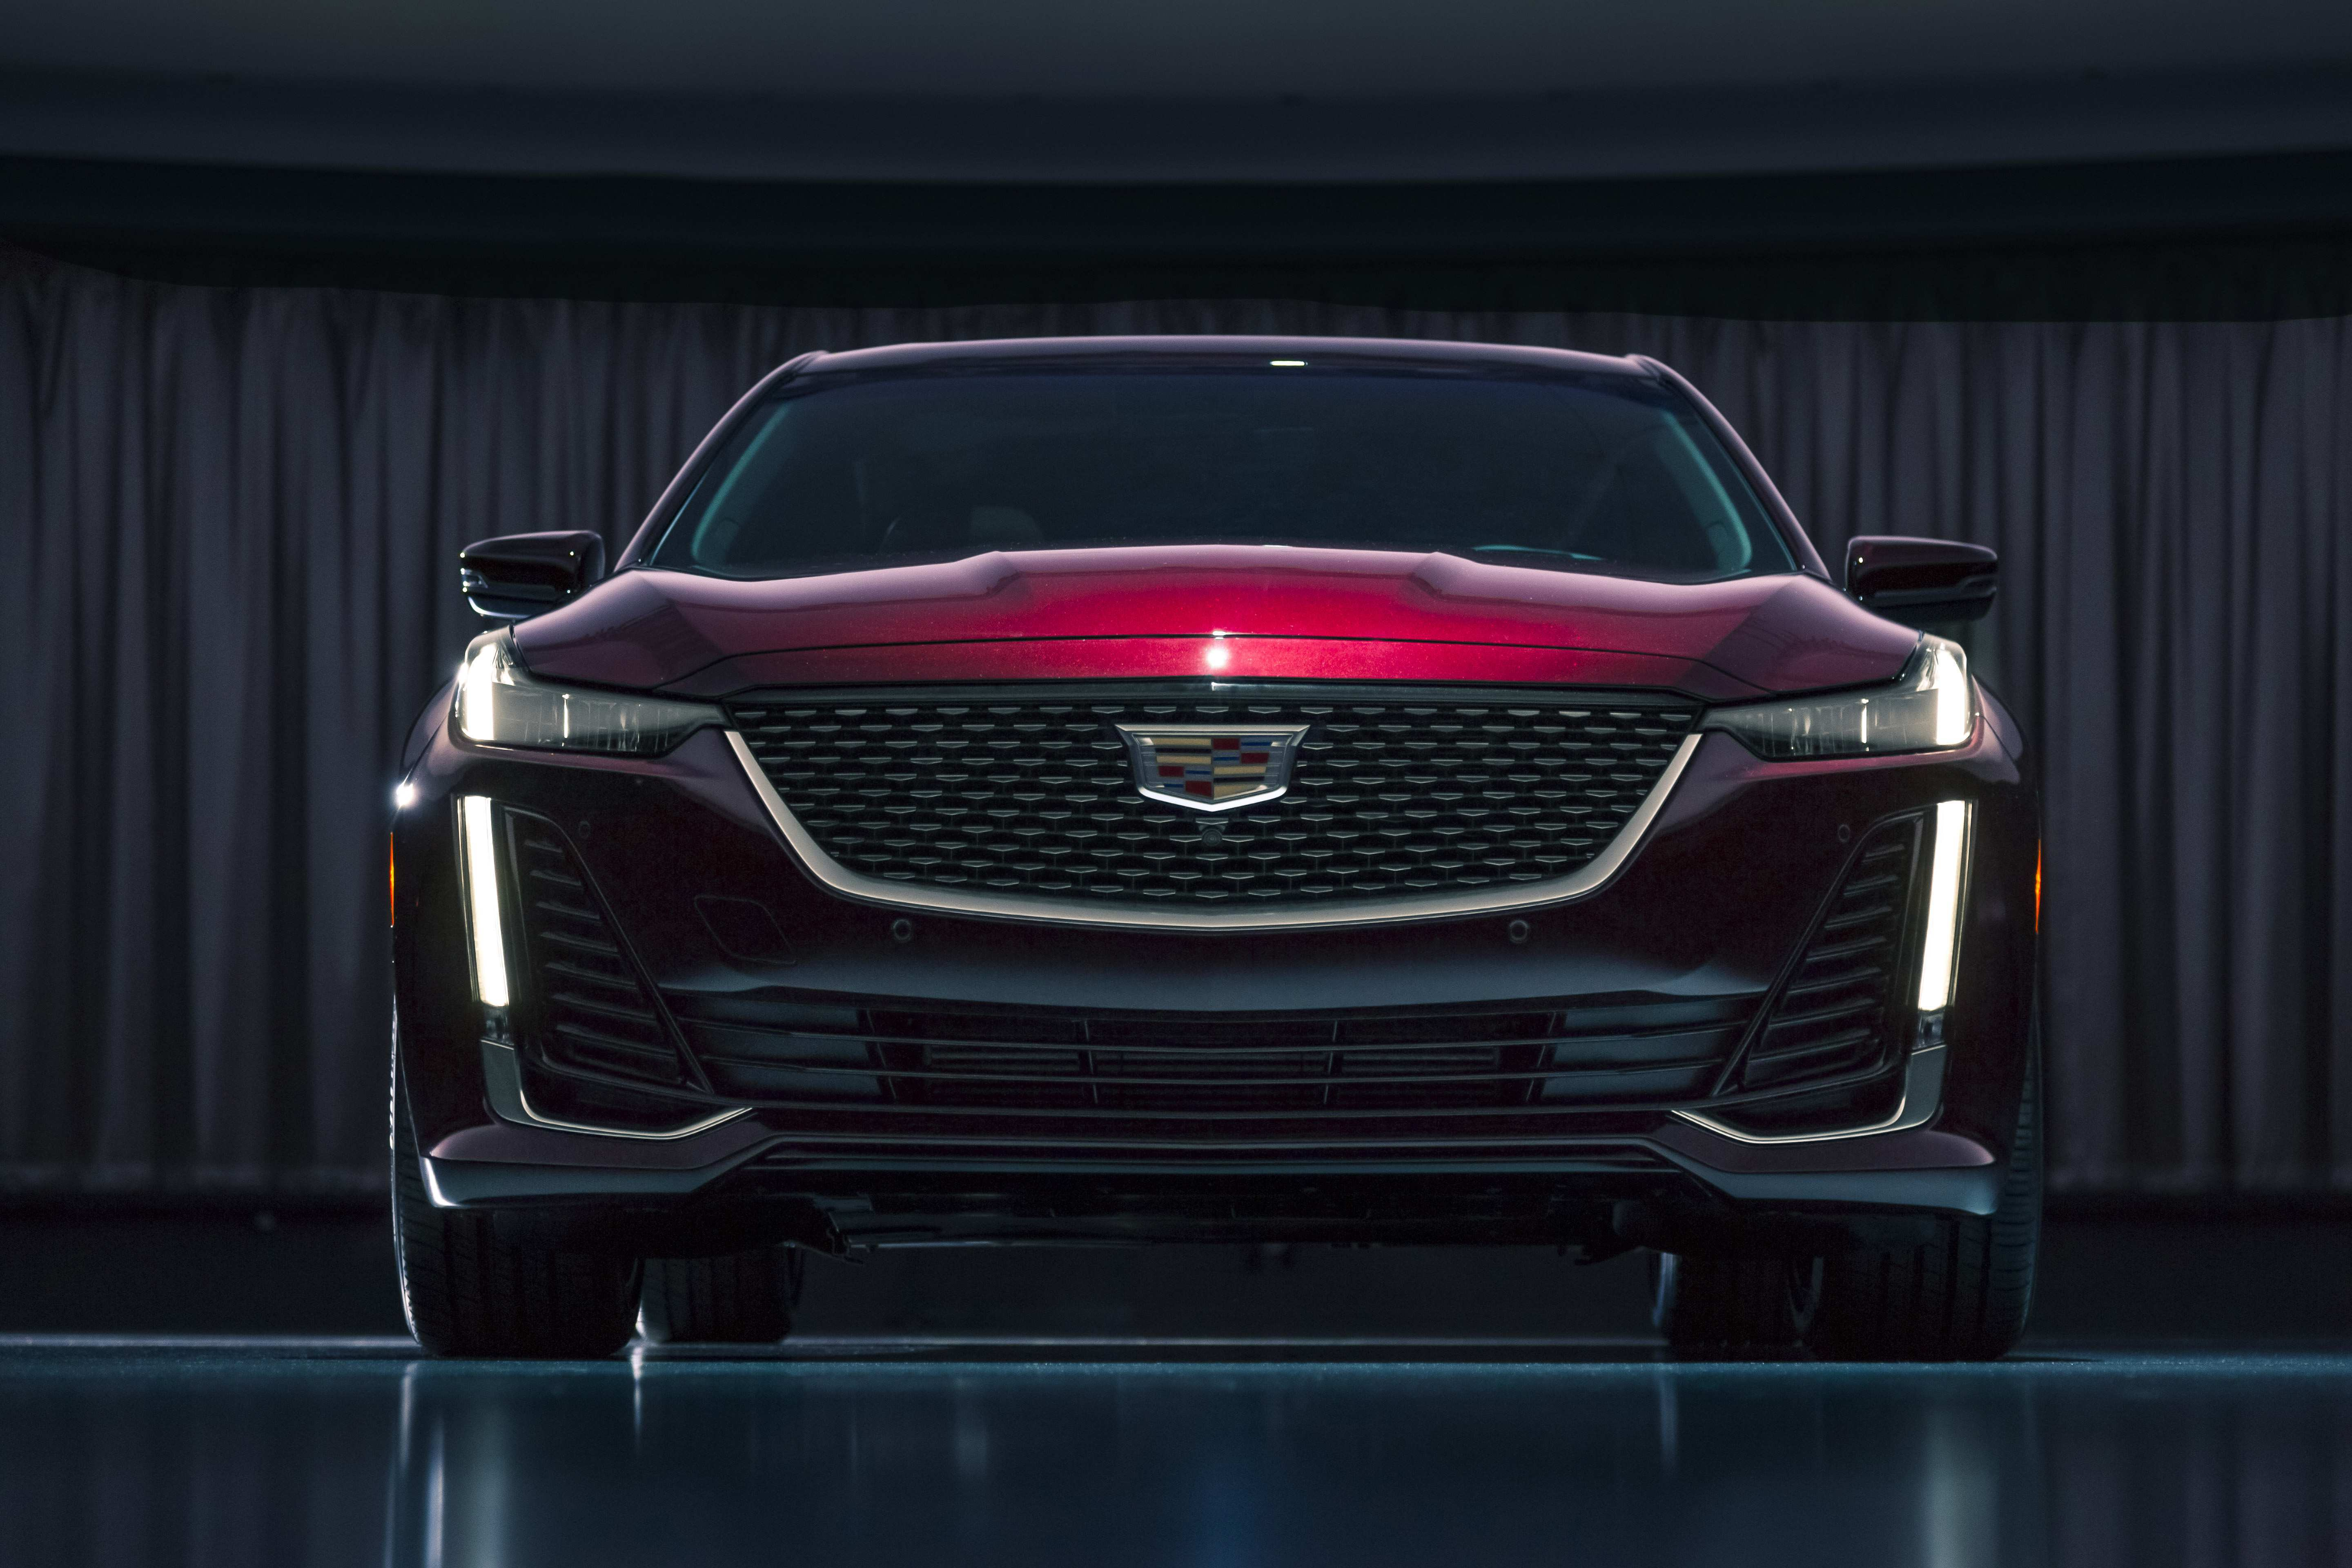 58 All New 2020 Cadillac Ct5 Horsepower Picture